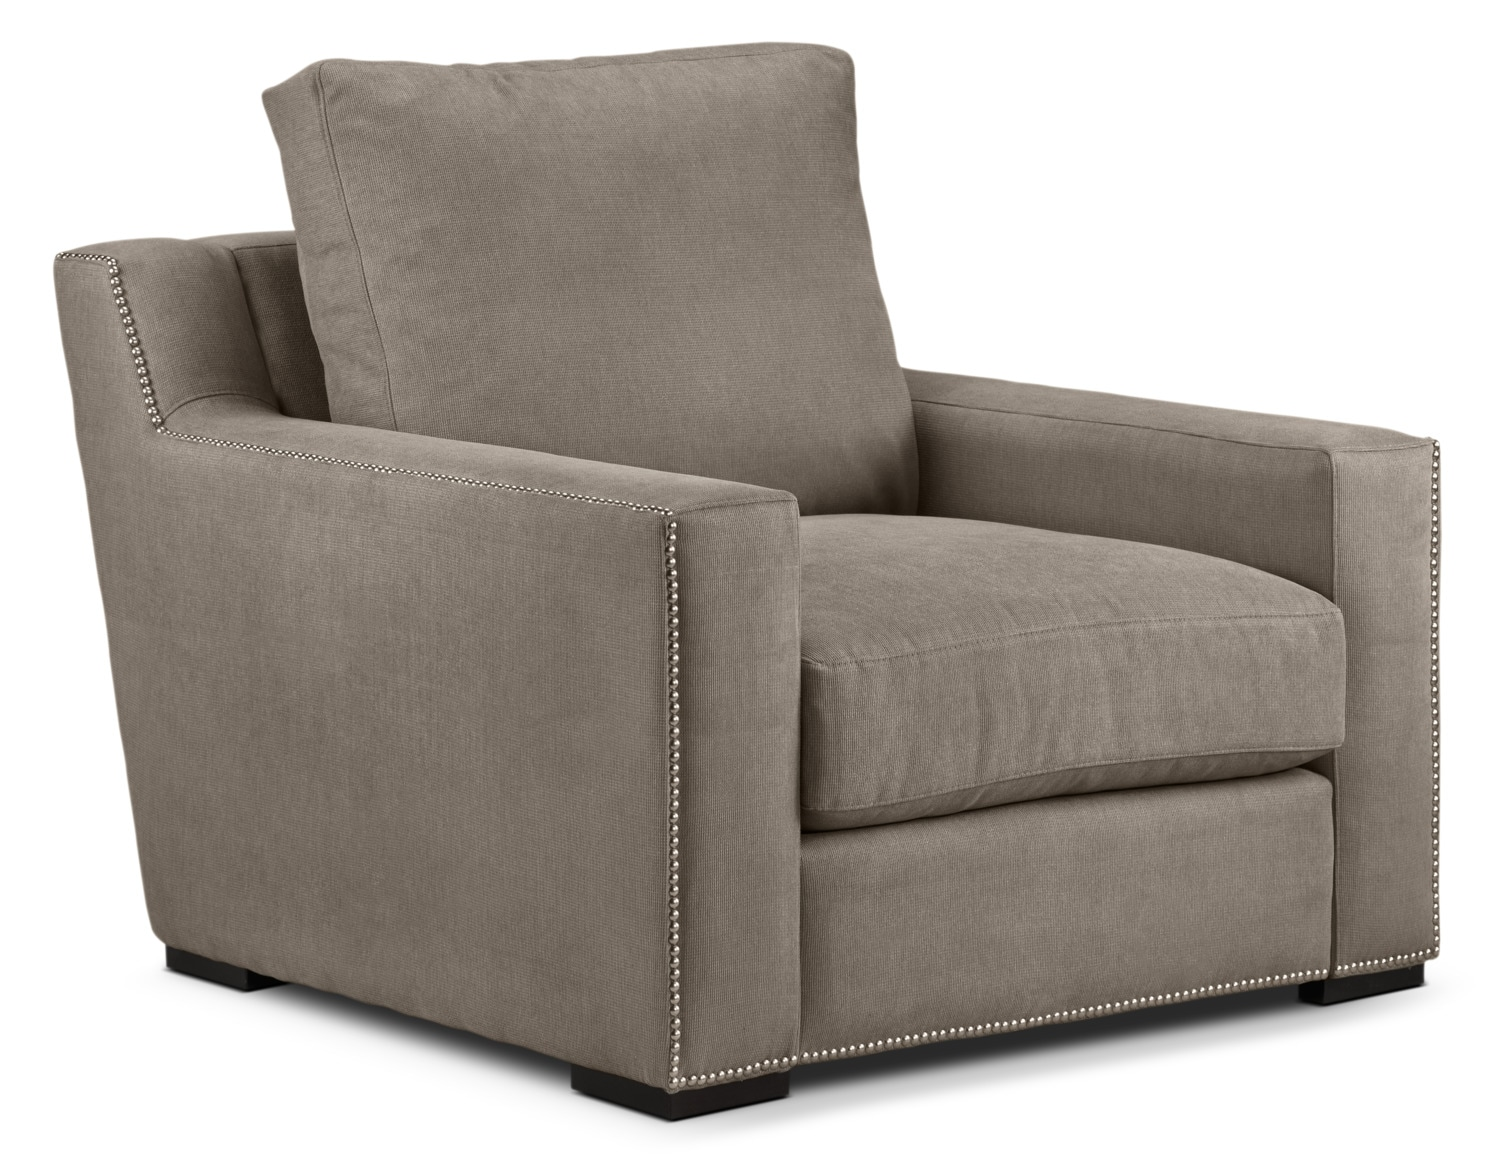 Ethan Chair - Taupe